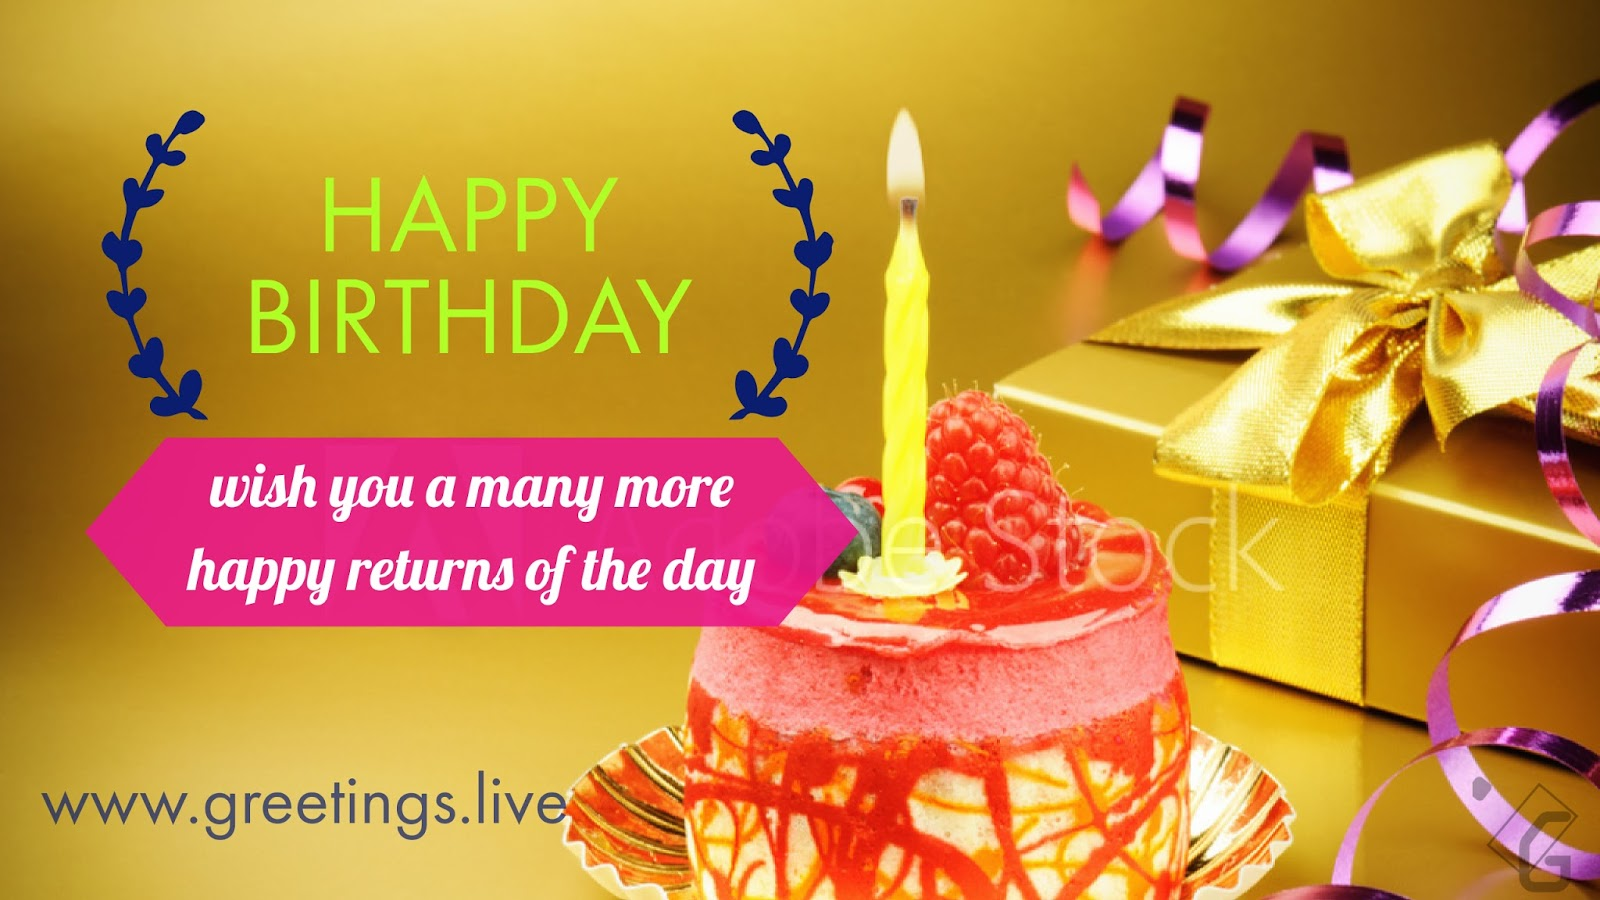 happy birthday wishes images free download ; wish%252Byou%252Ba%252Bmany%252Bmore%252Bhappy%252Breturns%252Bof%252Bthe%252Bday